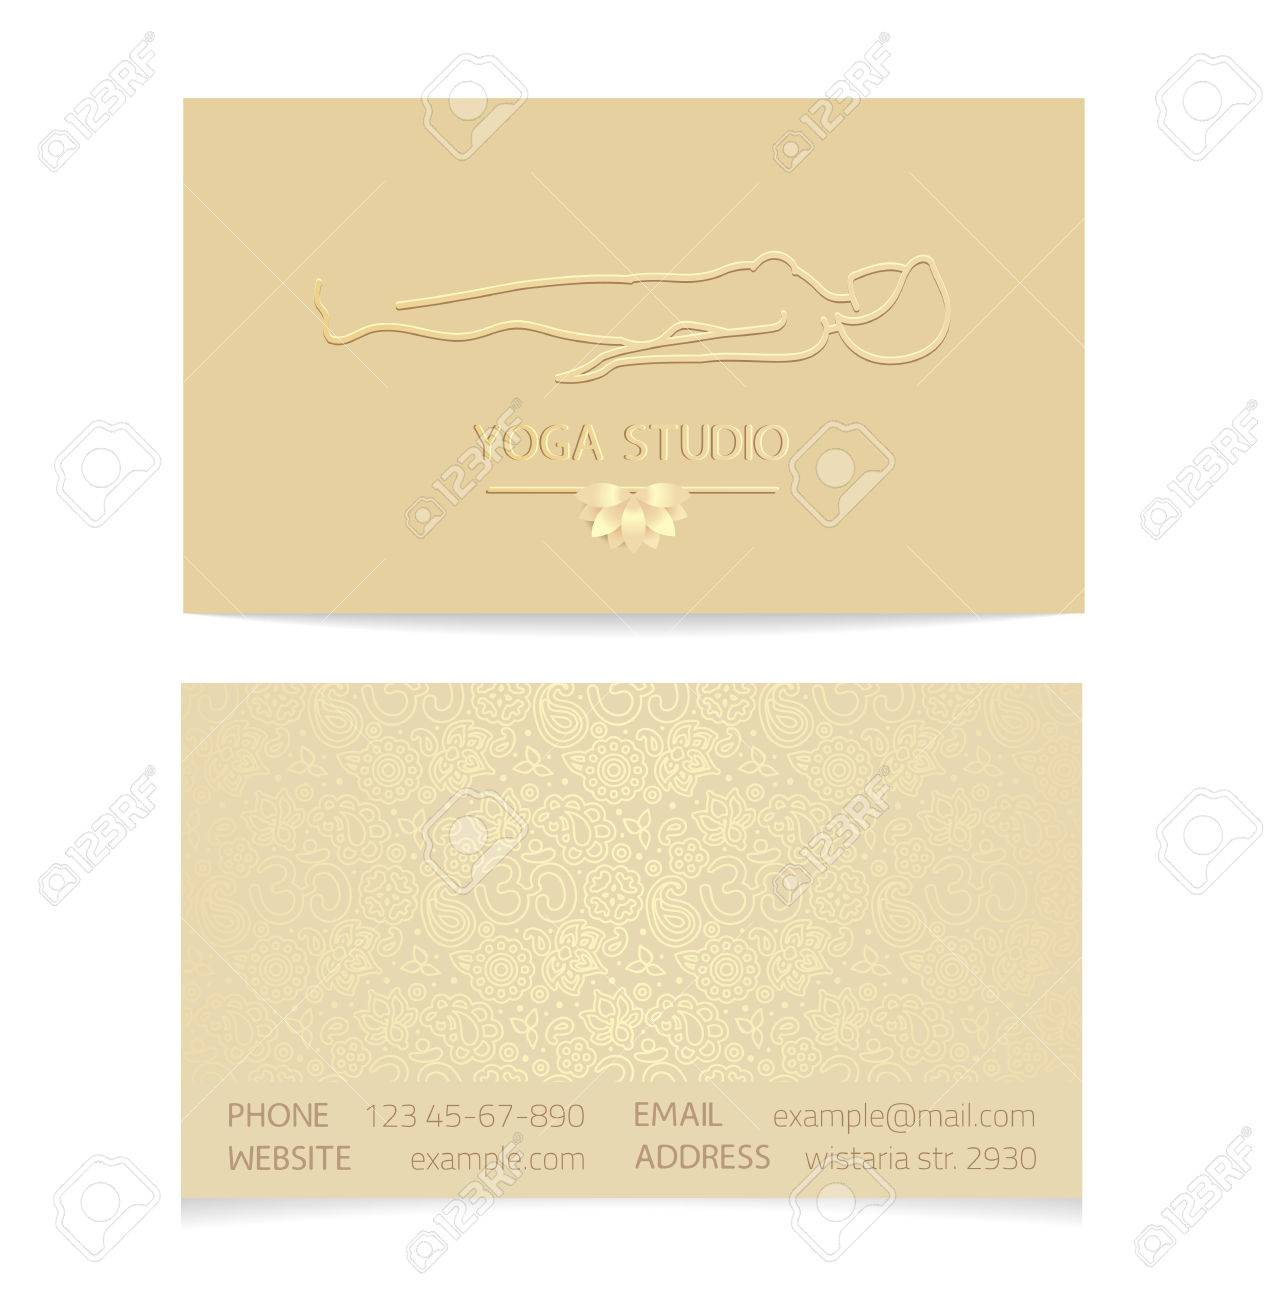 Front and back business card template word images free business front and back business card template word images templates front and back business card template word magicingreecefo Images